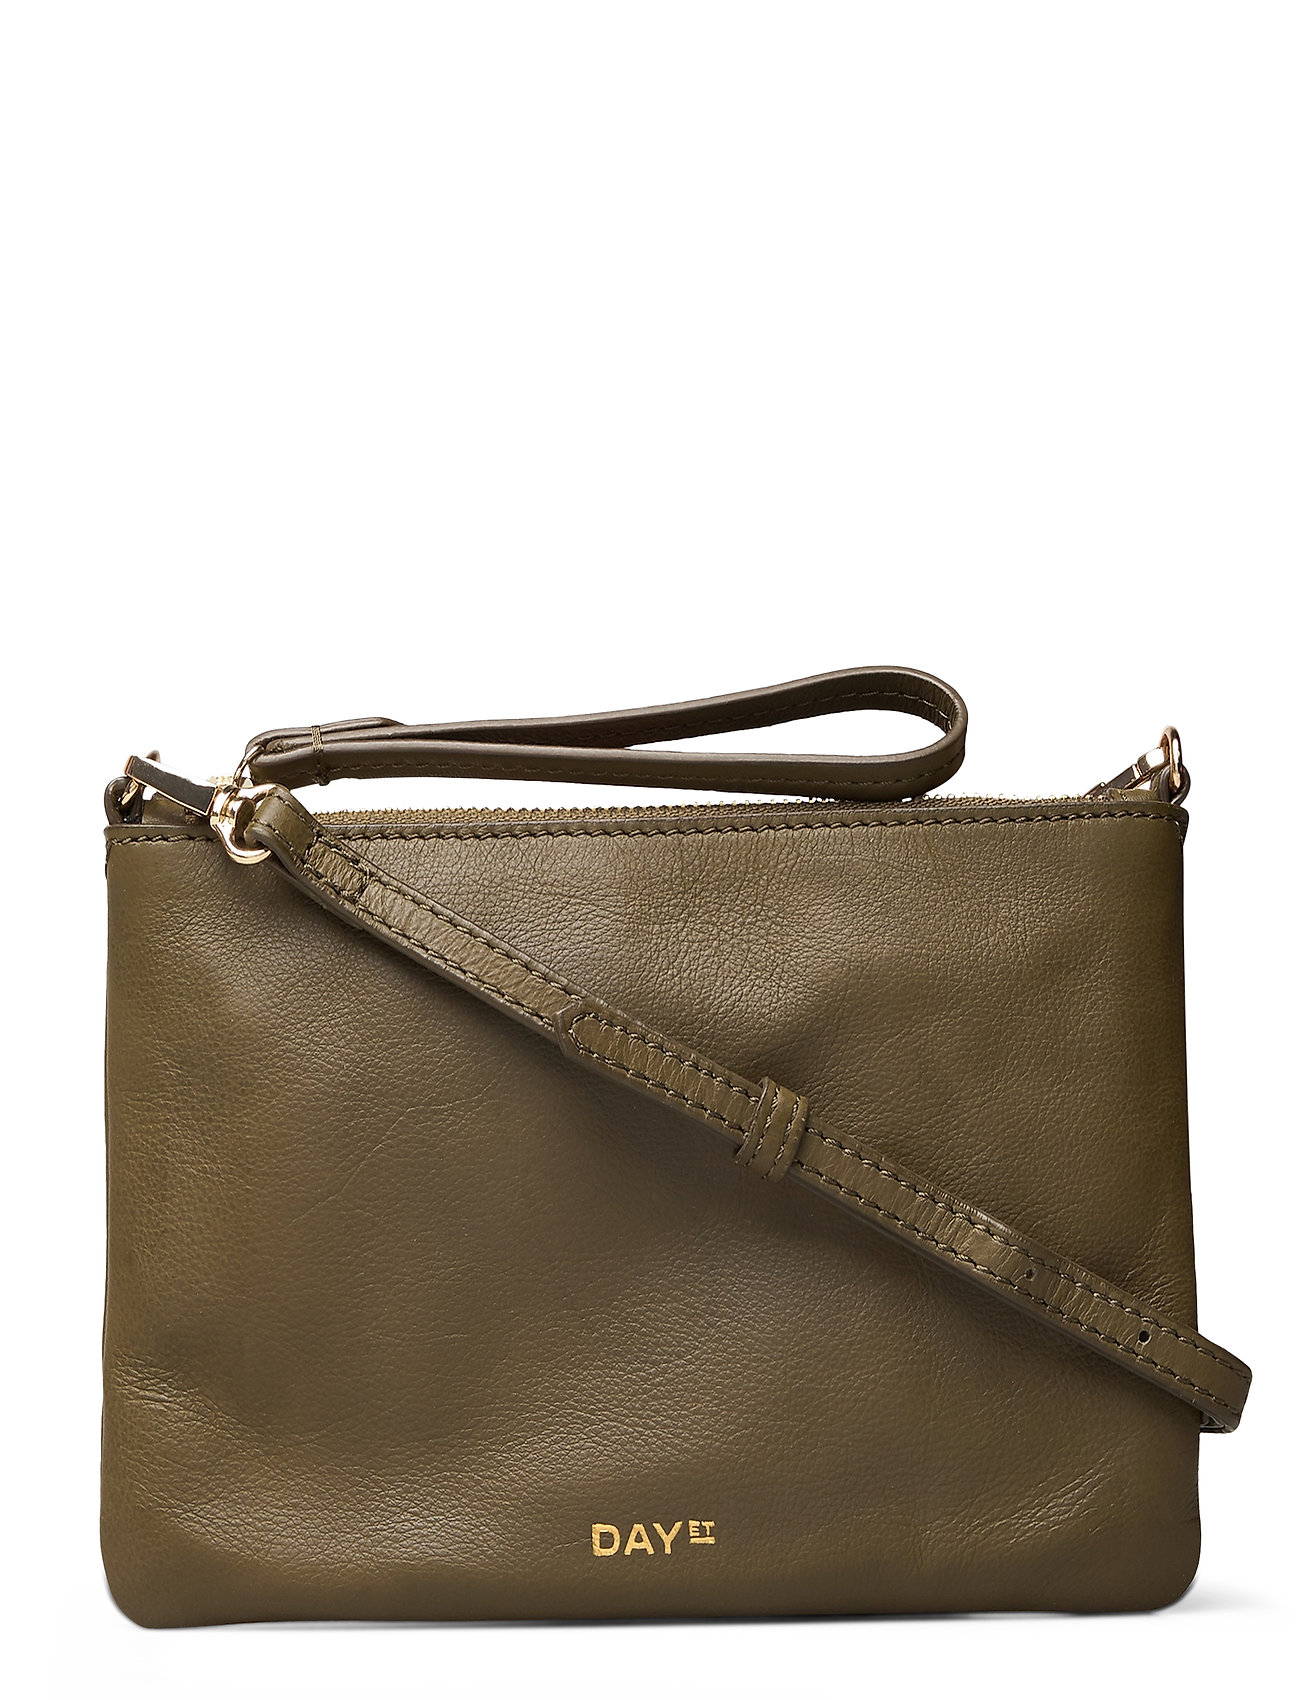 Image of Day Bern Cb Bags Small Shoulder Bags - Crossbody Bags Grøn DAY Et (3446804025)